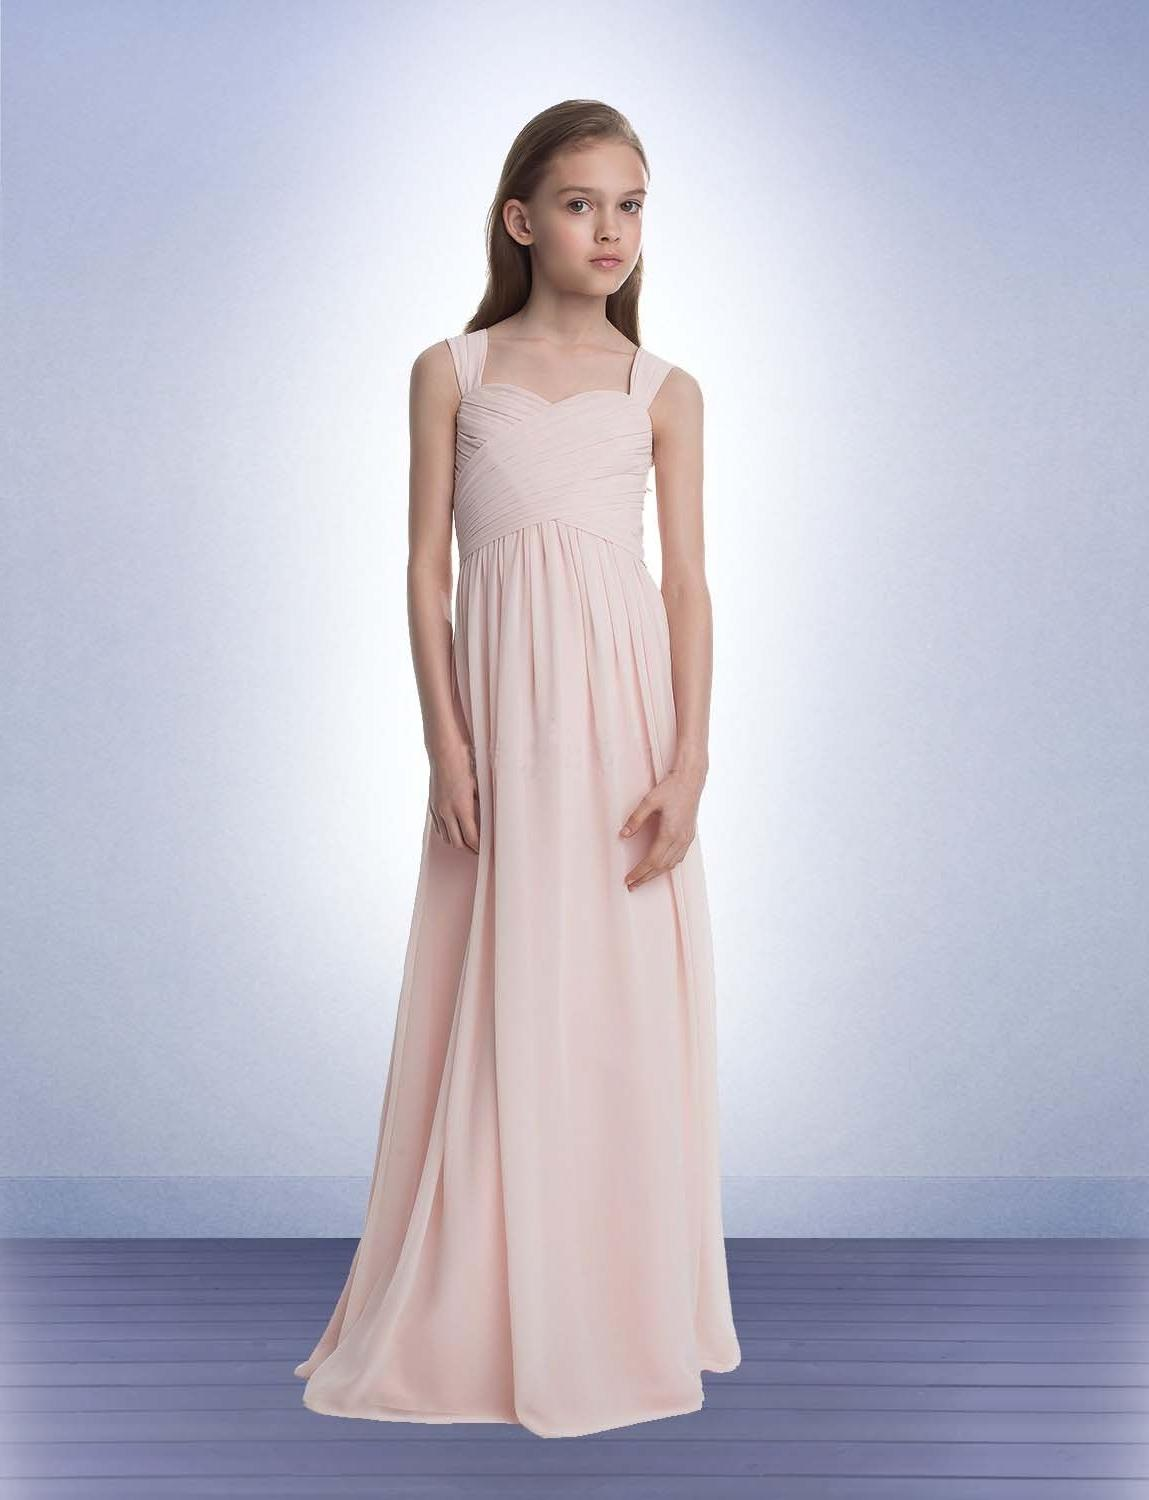 bridesmaid gown dress for wedding party flower dresses from